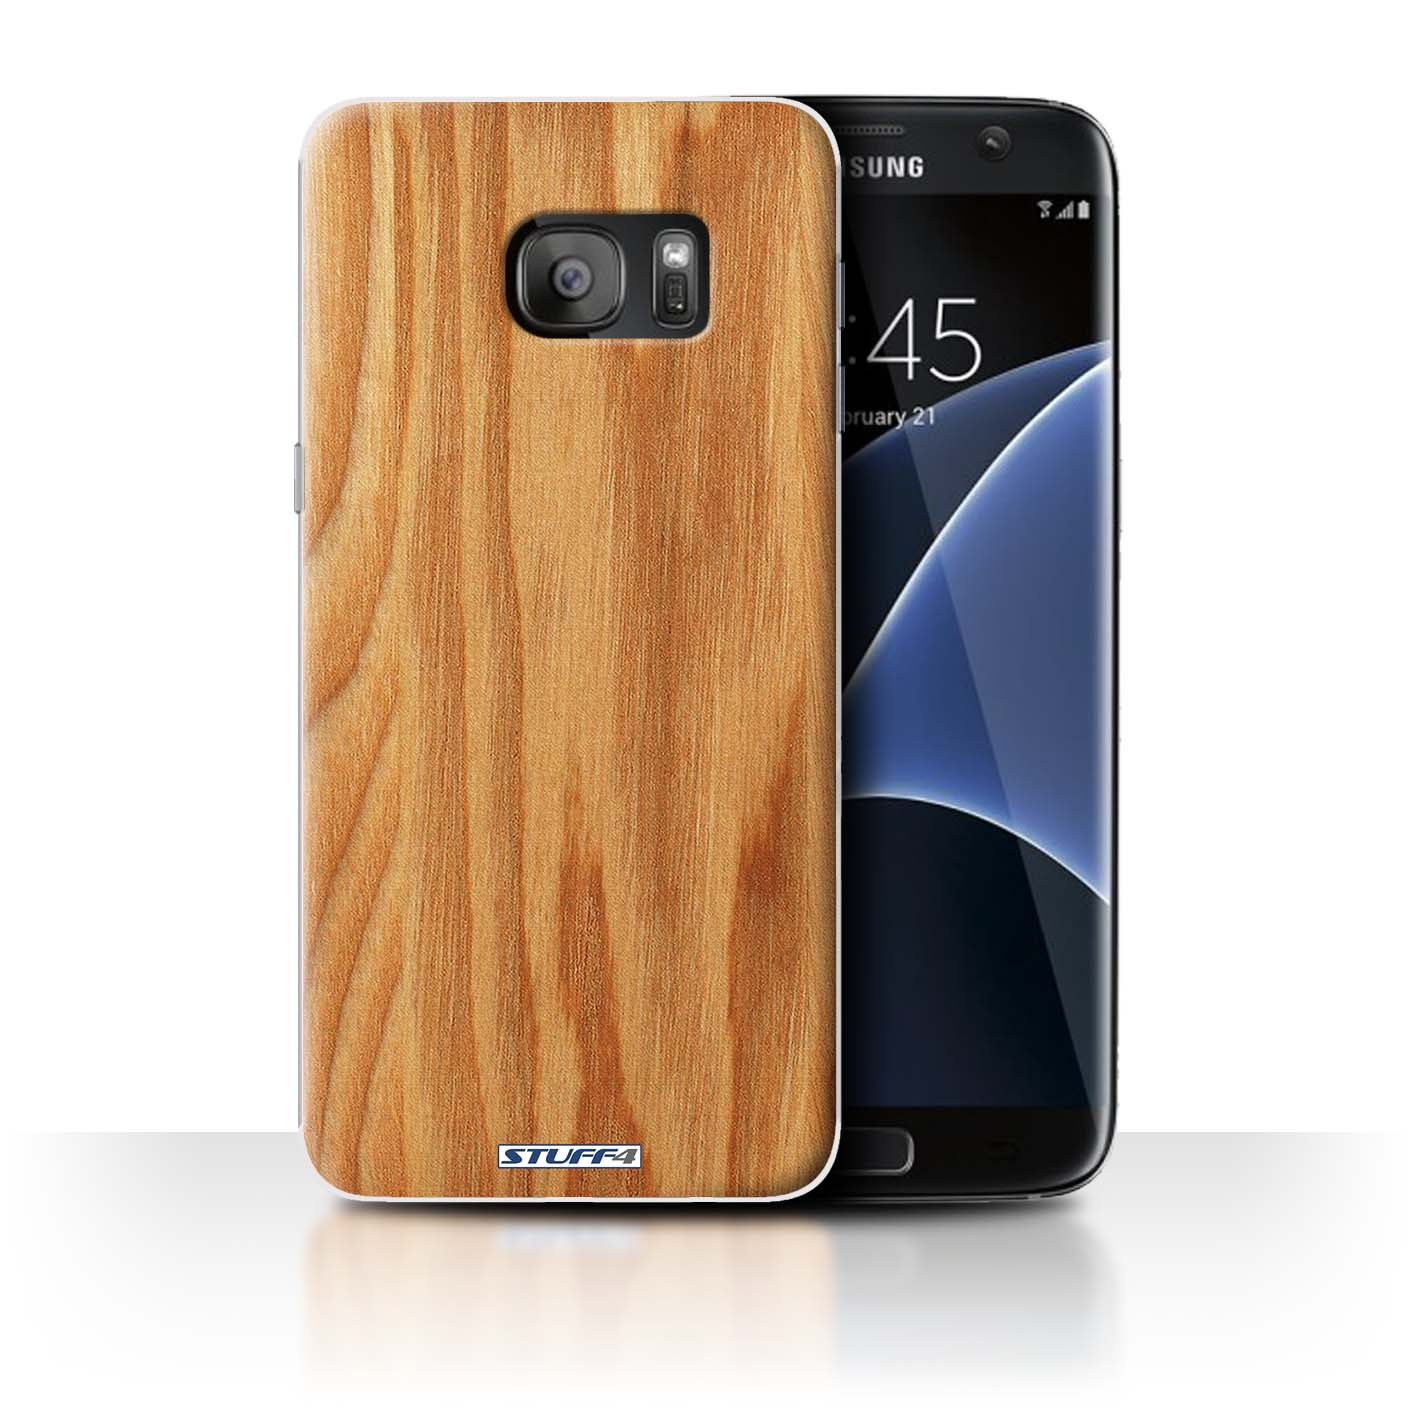 Protective Hard Back Case For Samsung Galaxy S7 Edgeg935 Wood Grain Effectpattern Collection Oak